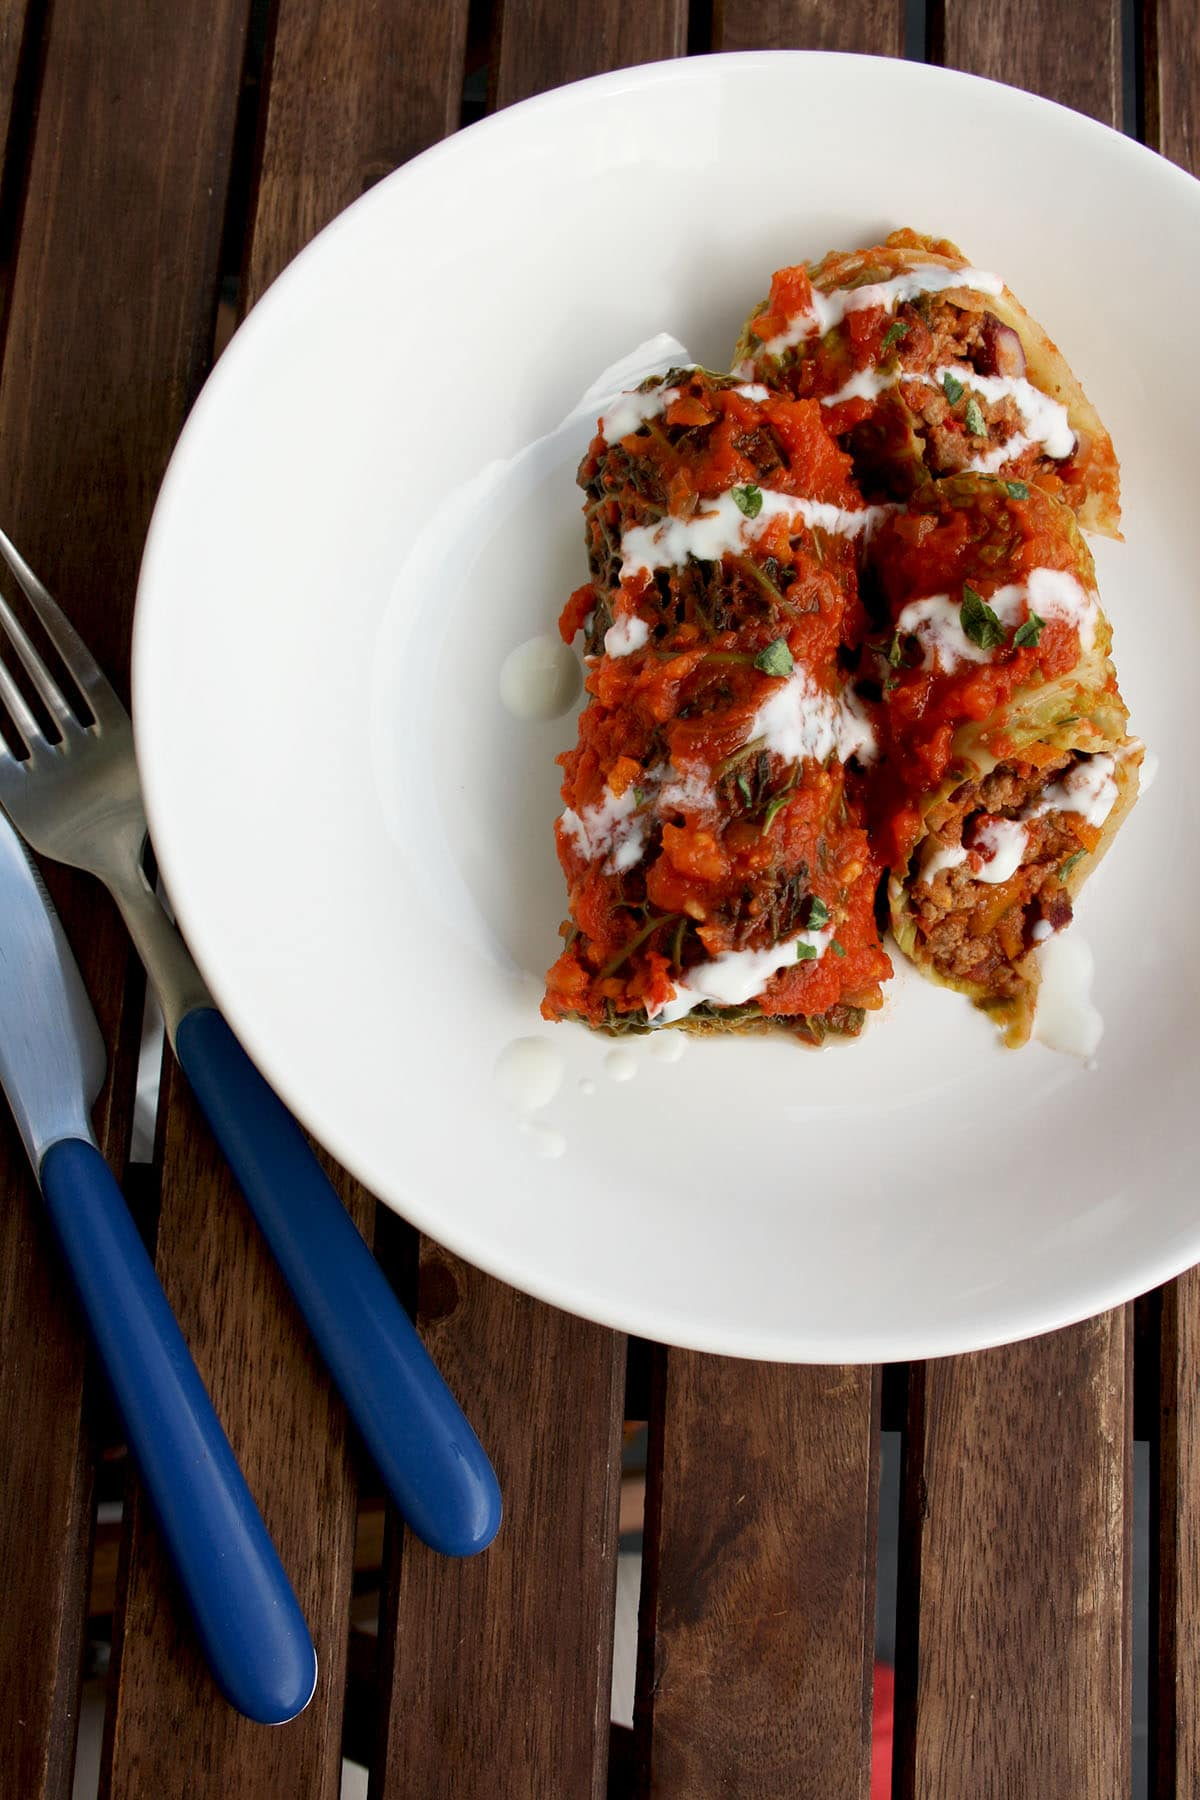 Mouthwatering, wholesome, flavorful and comforting fusion of Russian and American cuisine: Cabbage Rolls (Golubtsy) Stuffed with Chilli Con Carne. Great as a make-ahead seasonal meal!